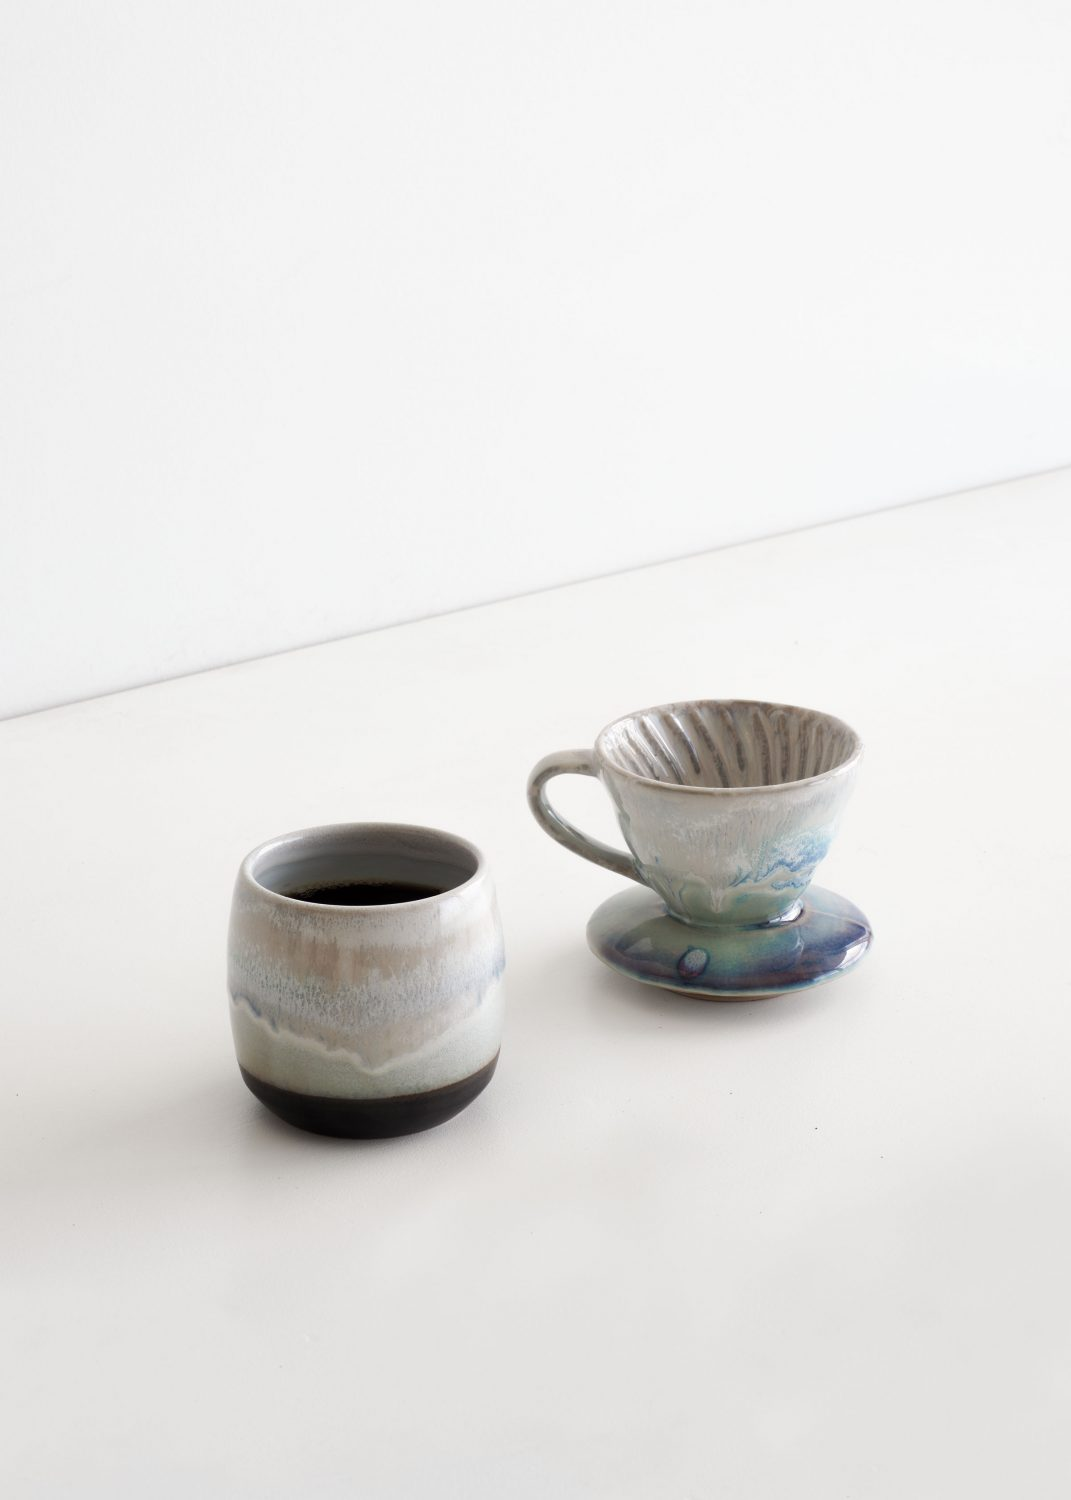 Guide To Pour Over Coffee | How To Make Pour Over Coffee - HEY GENTS Magazine - Provider Store Japanese Ceramic Coffee Cup Set